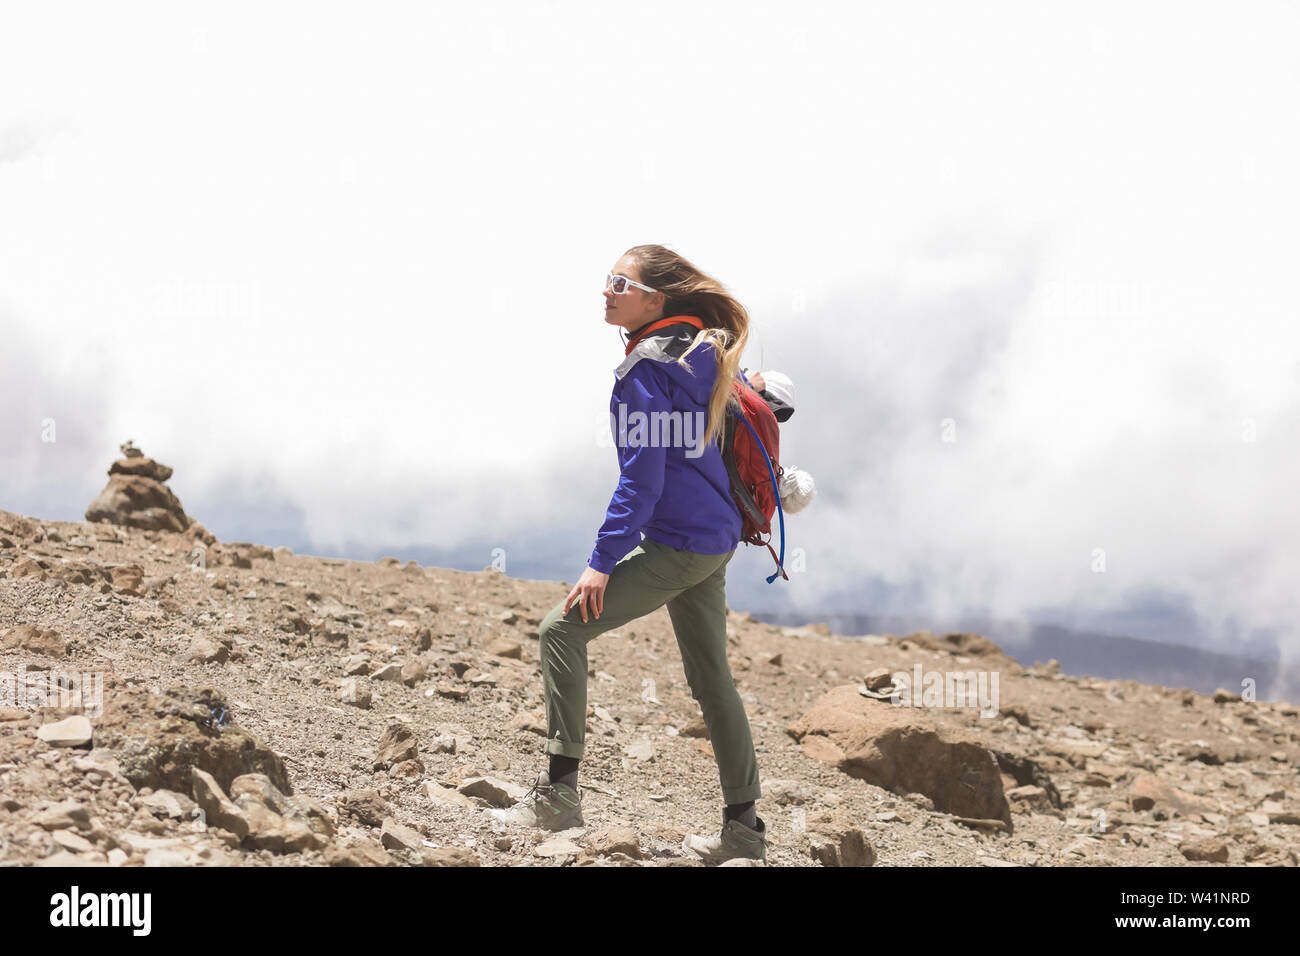 Shapely blonde having a rest between long distances and climbing to the mountain. High Kilimanjaro top with rocks and no plants. White clouds behind Stock Photo